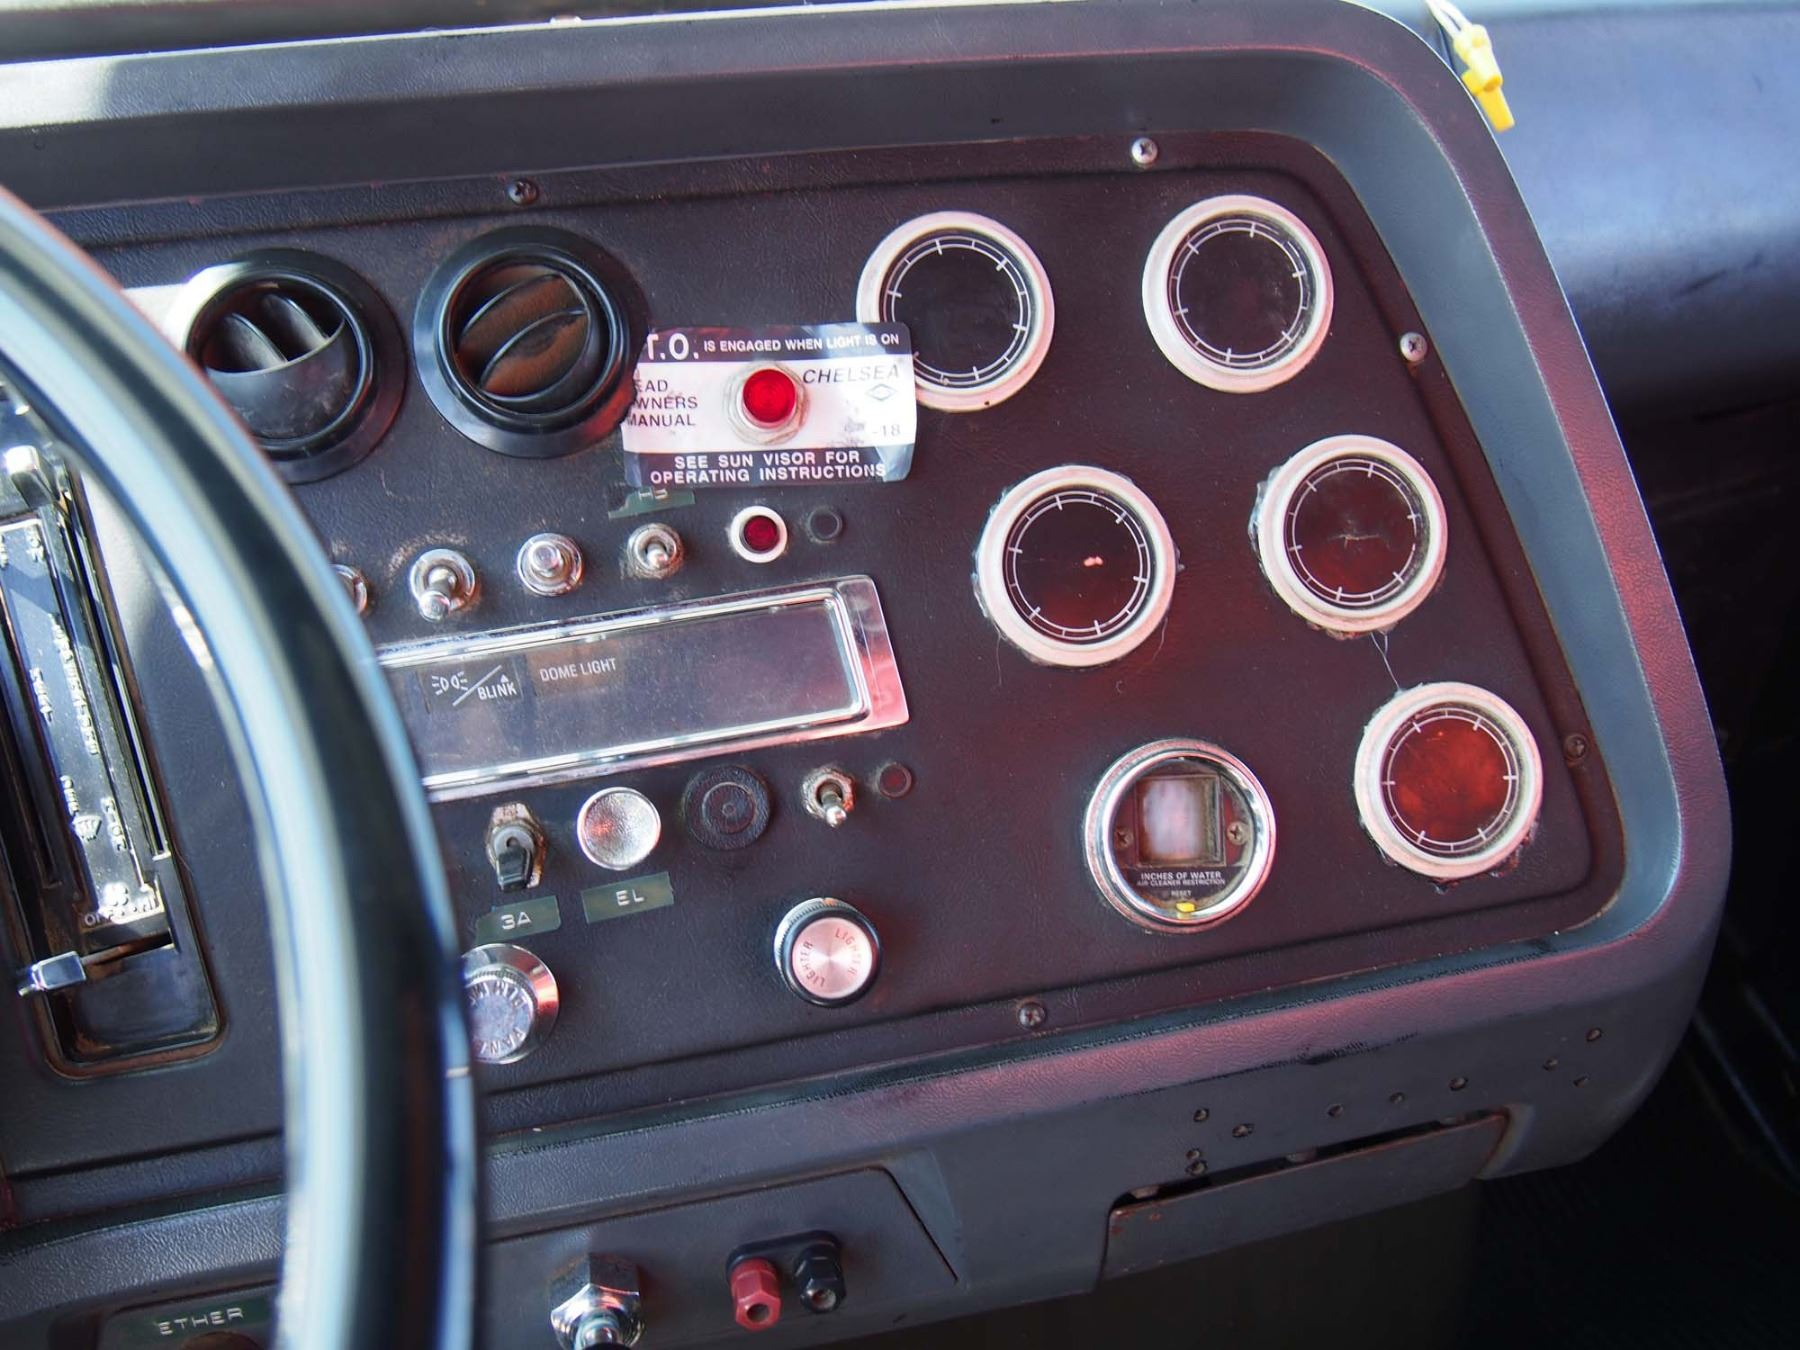 hight resolution of  image 8 1988 ford l9000 tandem truck 855 cummings engine 20 box and